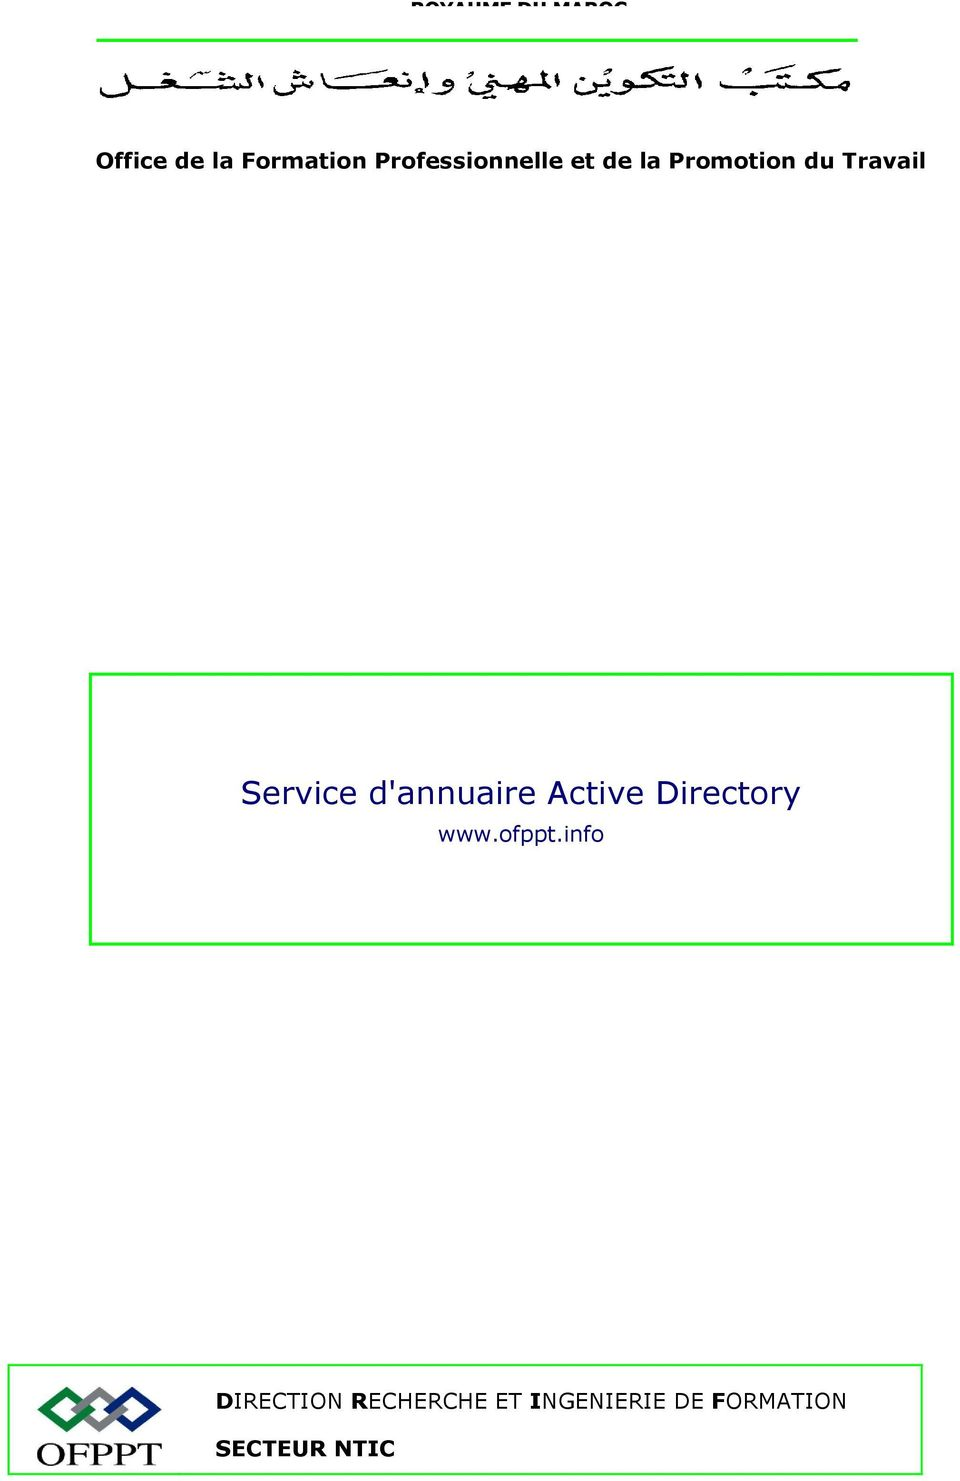 Service d'annuaire Active Directory DIRECTION